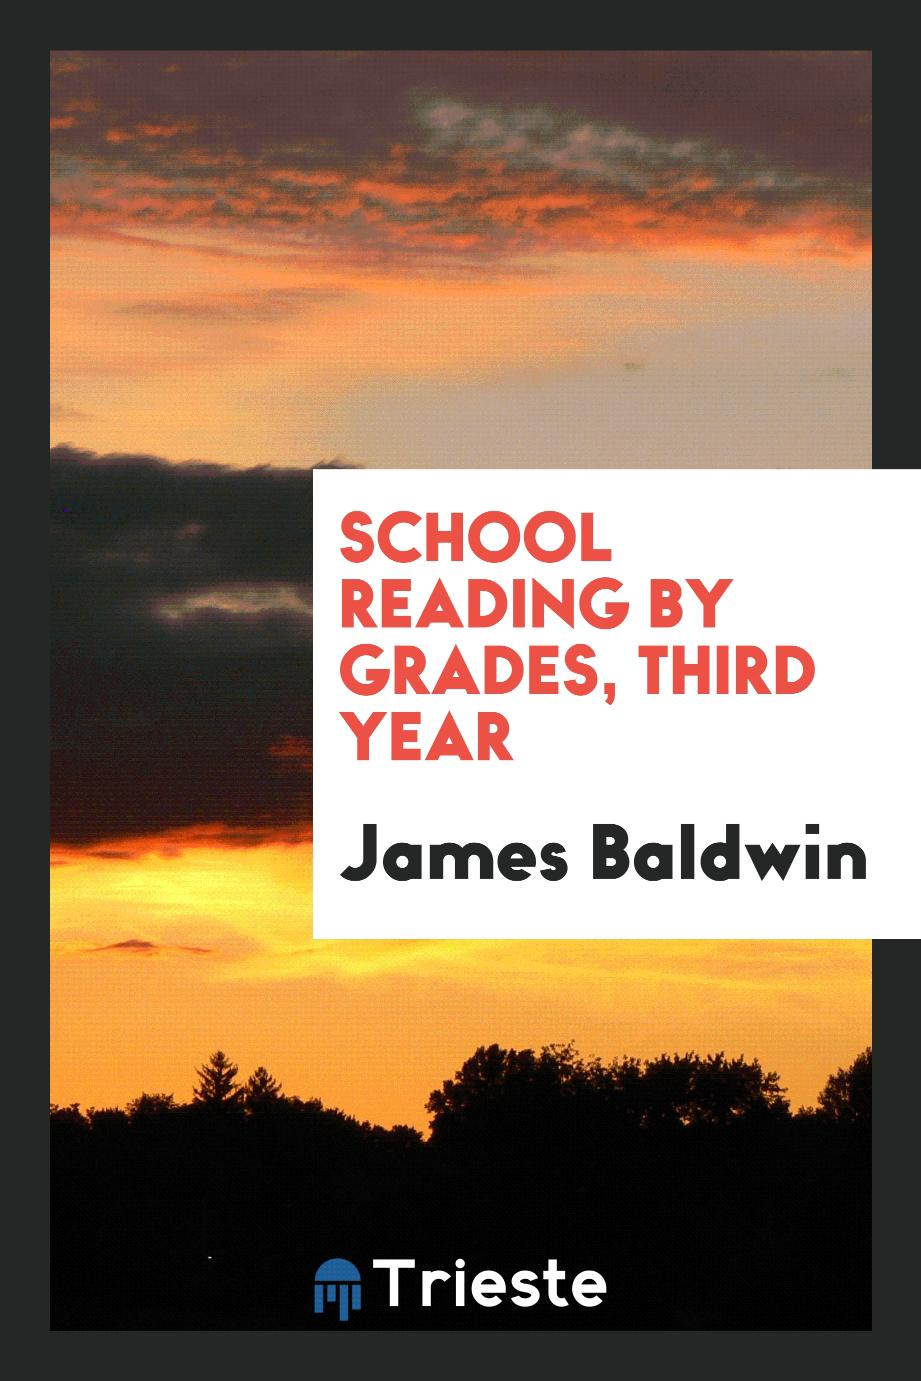 School Reading by Grades, Third Year